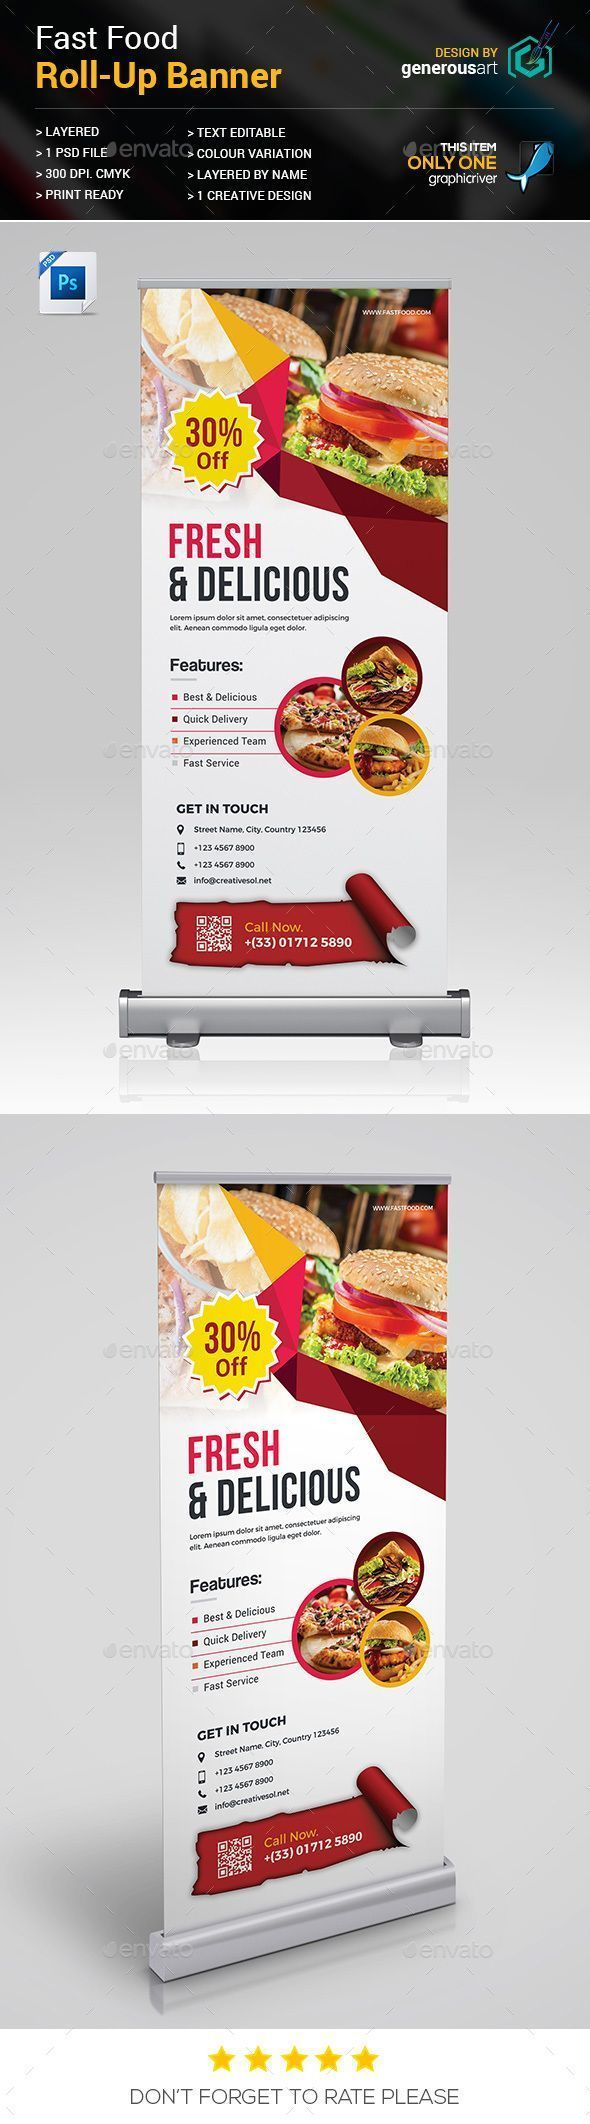 Fast Food Roll Up Banner By Generousart Specification 1 Creative Design300 Dpi R Brochures Go To Source Mydailygra In 2020 Pull Up Banner Design Food Banner Fast Food